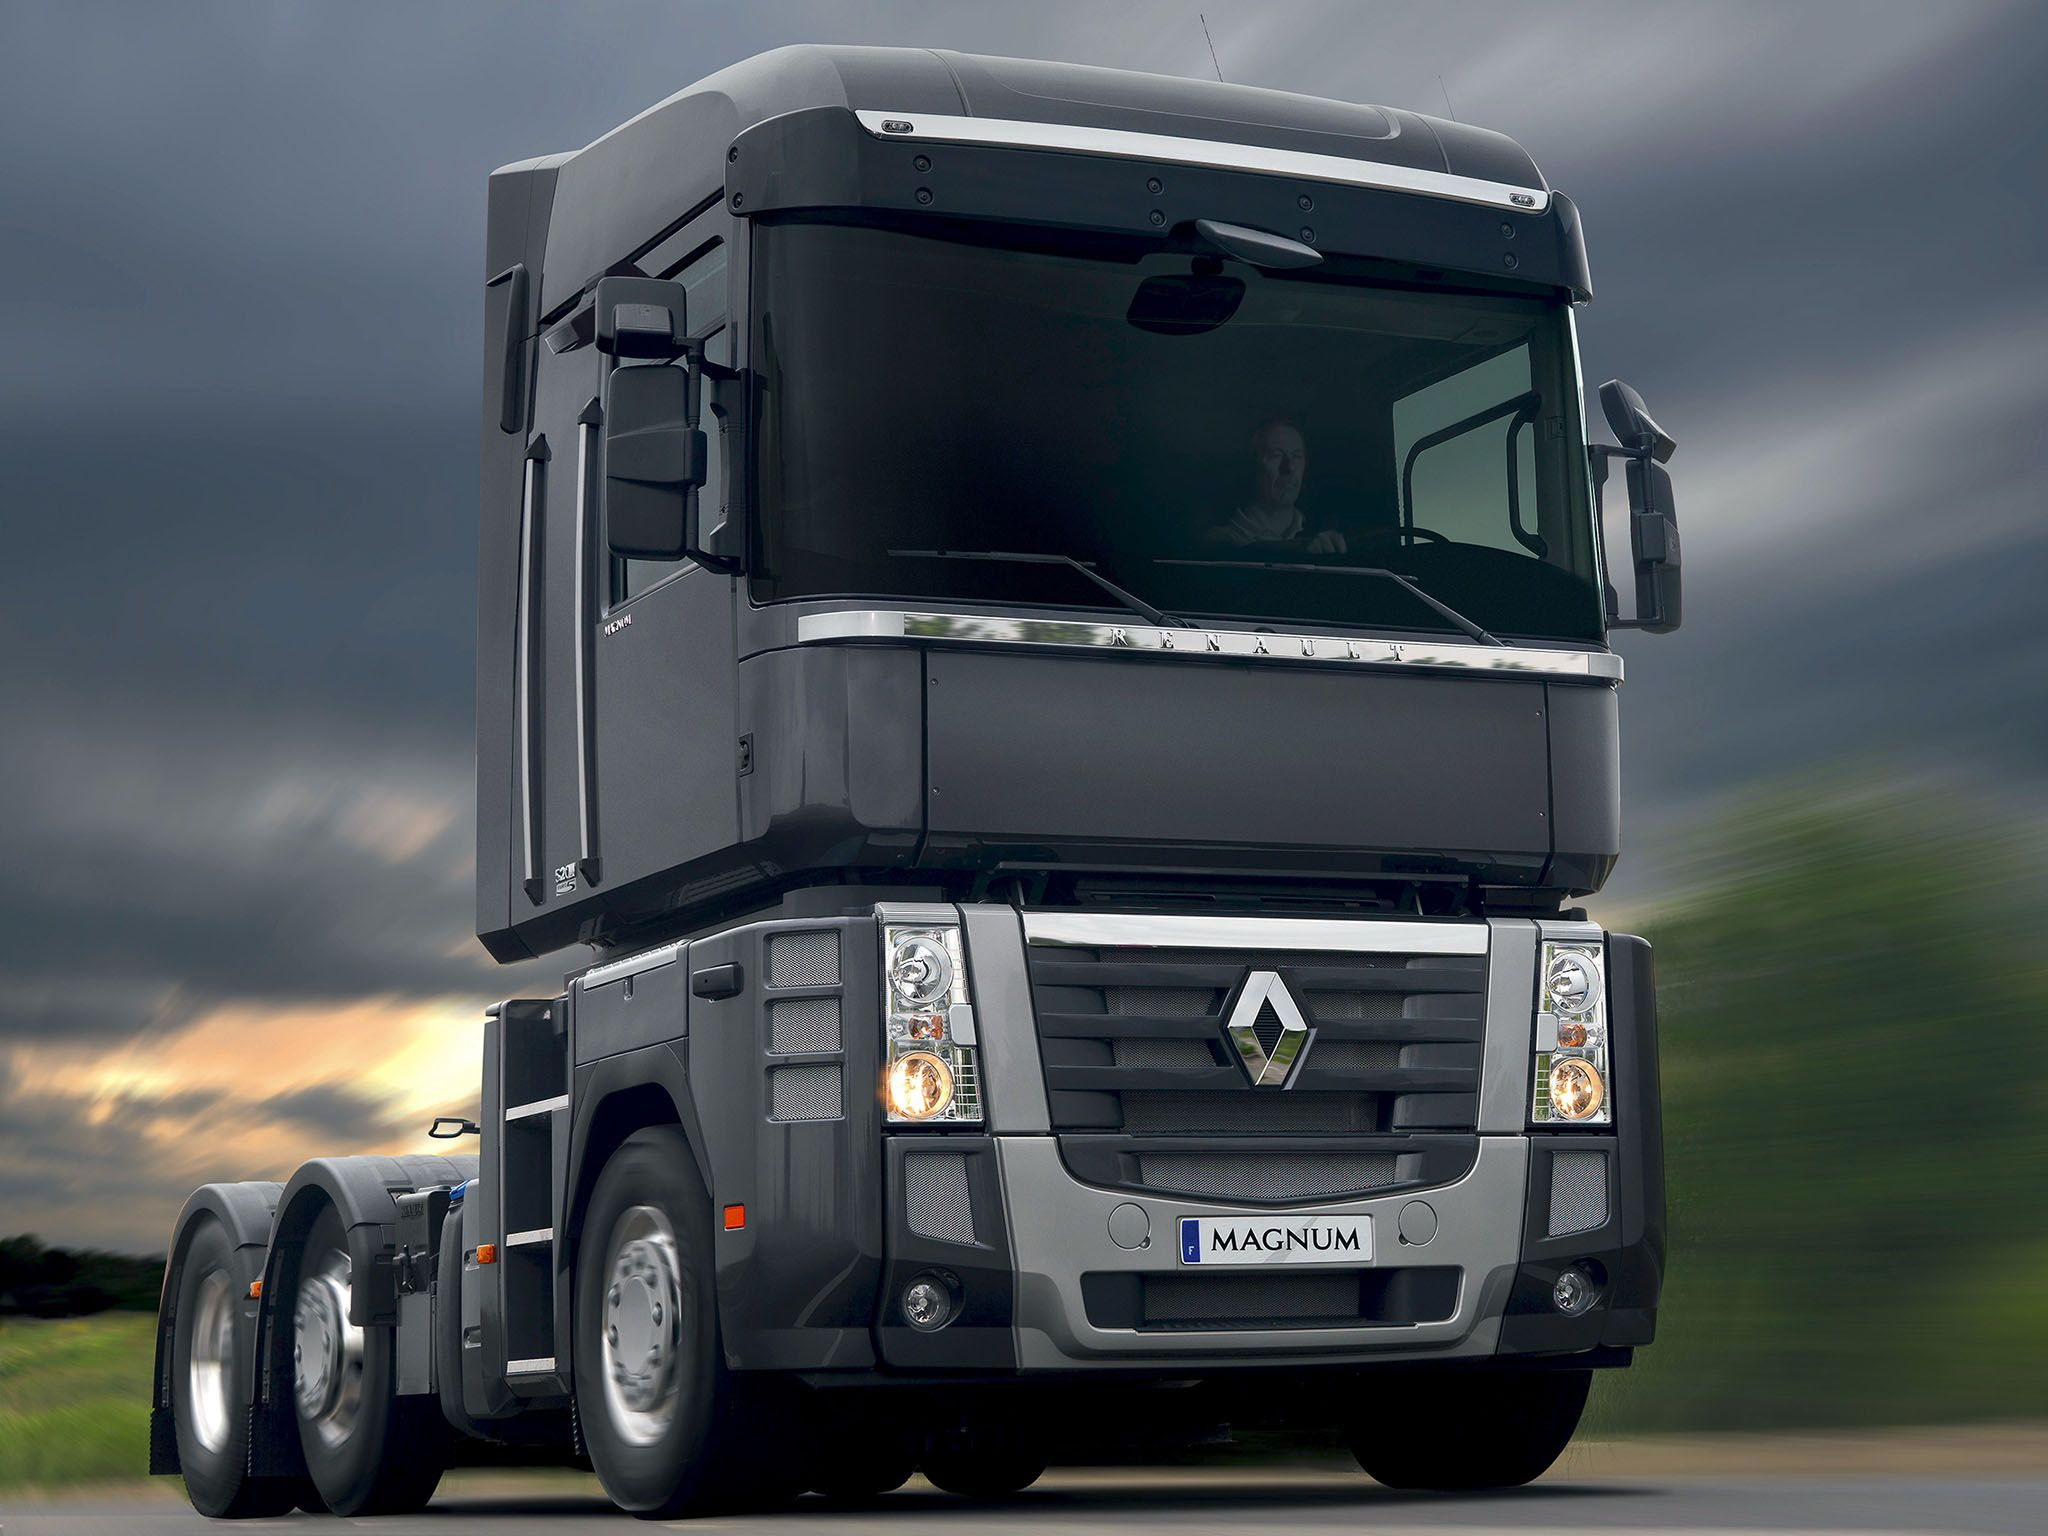 renault magnum 6x2 european trucks pinterest classic trucks and cars. Black Bedroom Furniture Sets. Home Design Ideas